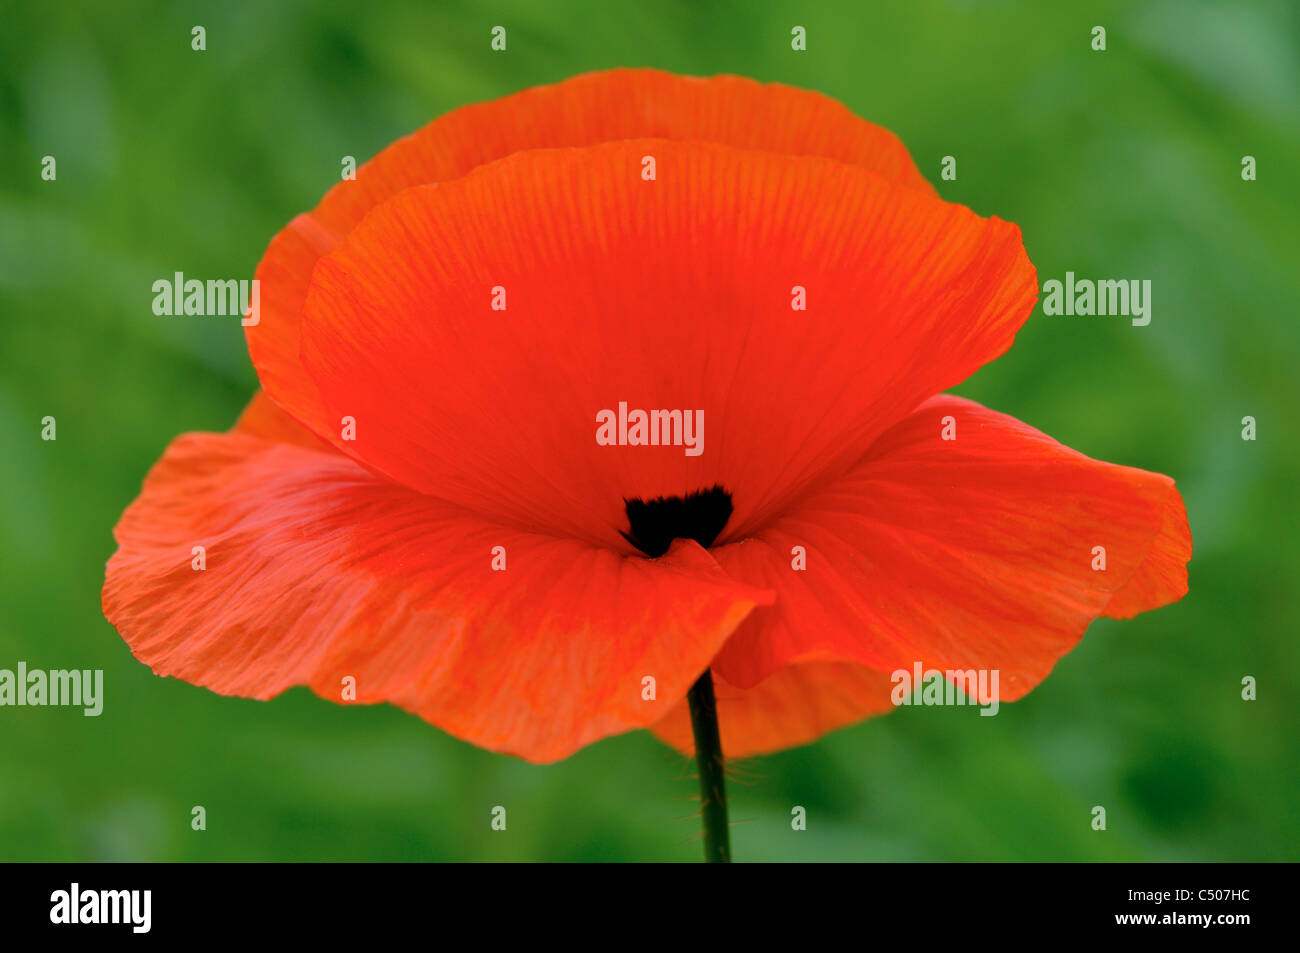 Flower of red poppy. - Stock Image